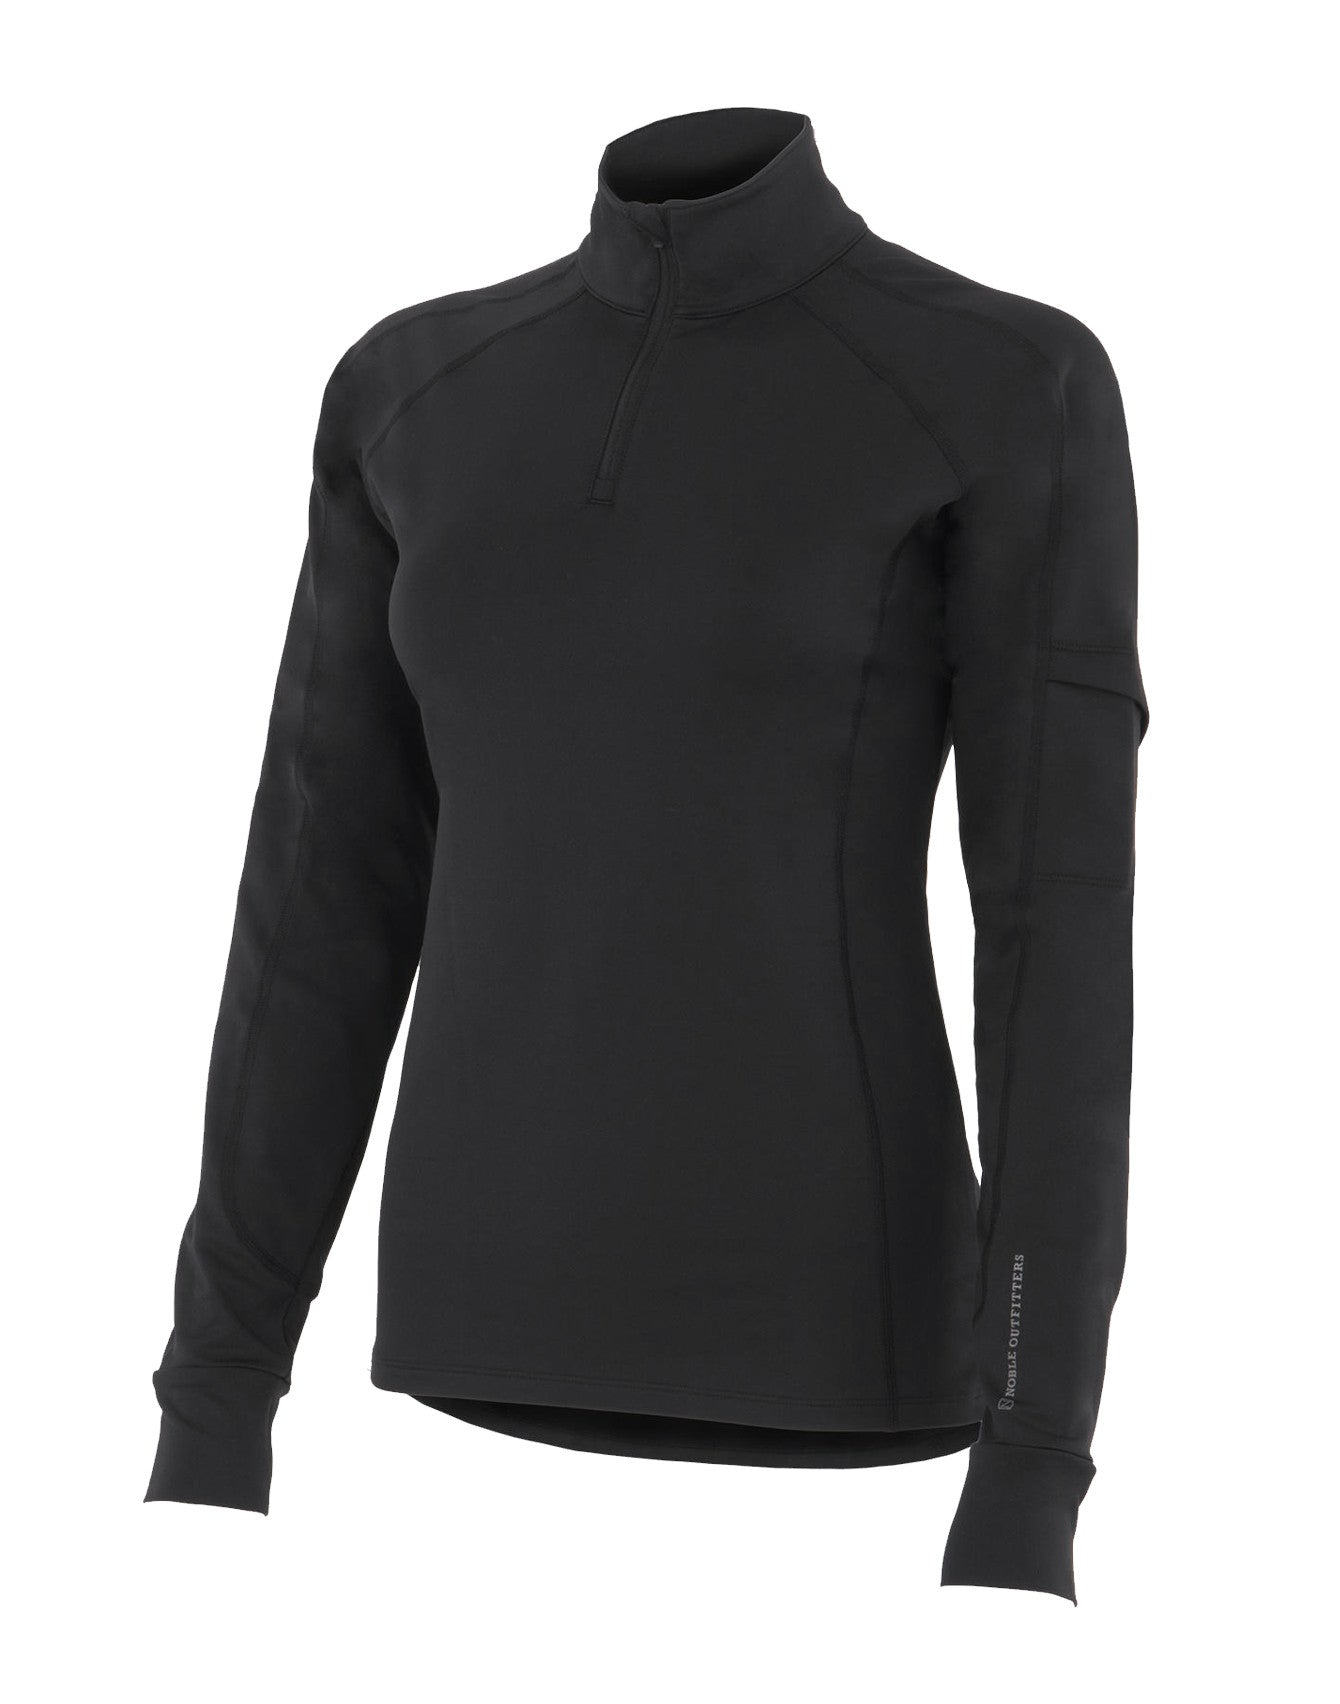 Noble Outfitters Lauren 1/4 Zip Mock Shirt - SALE - North Shore Saddlery